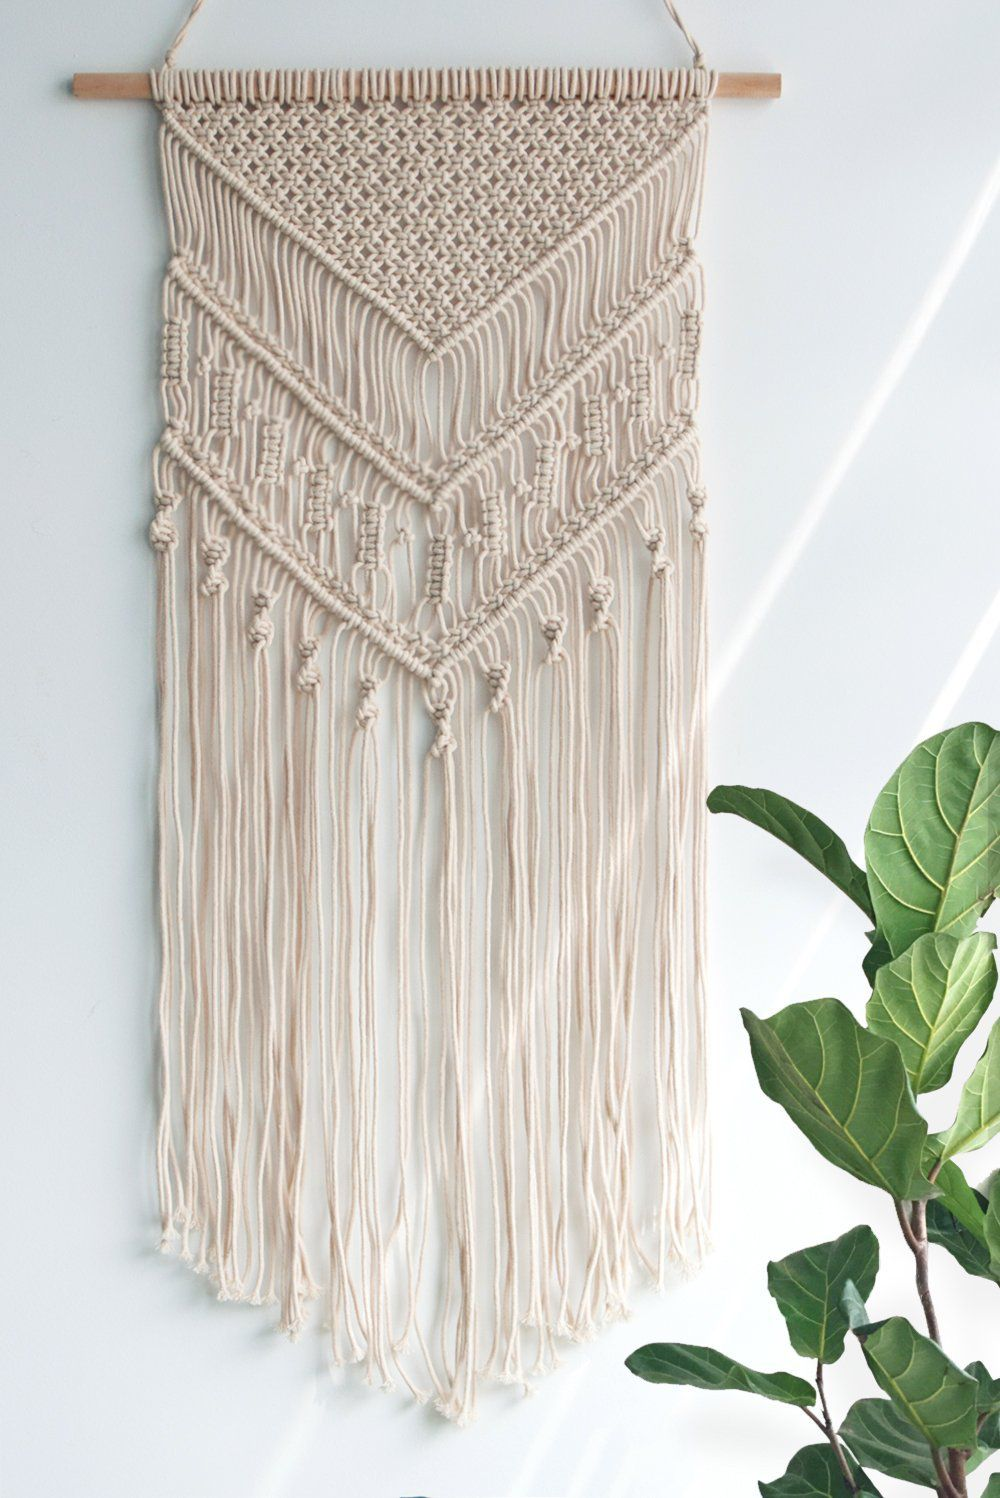 The 7 Best Macrame Wall Hangings To Buy In 2018